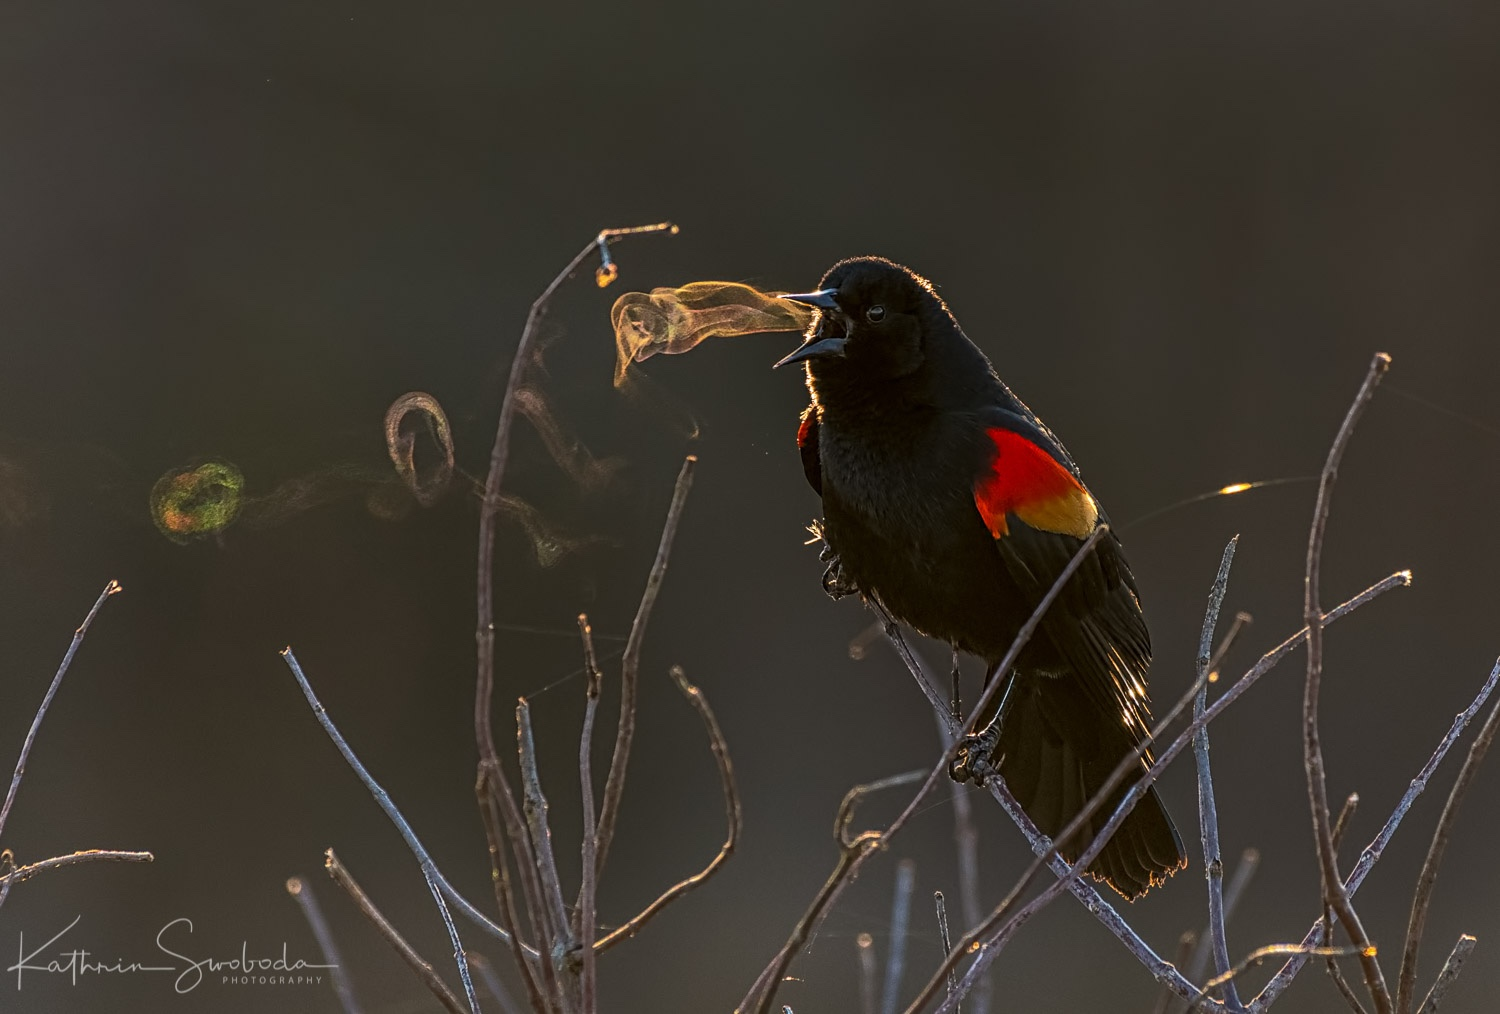 Red-winged Blackbird, Kathrin Swoboda/Audubon Photography Awards